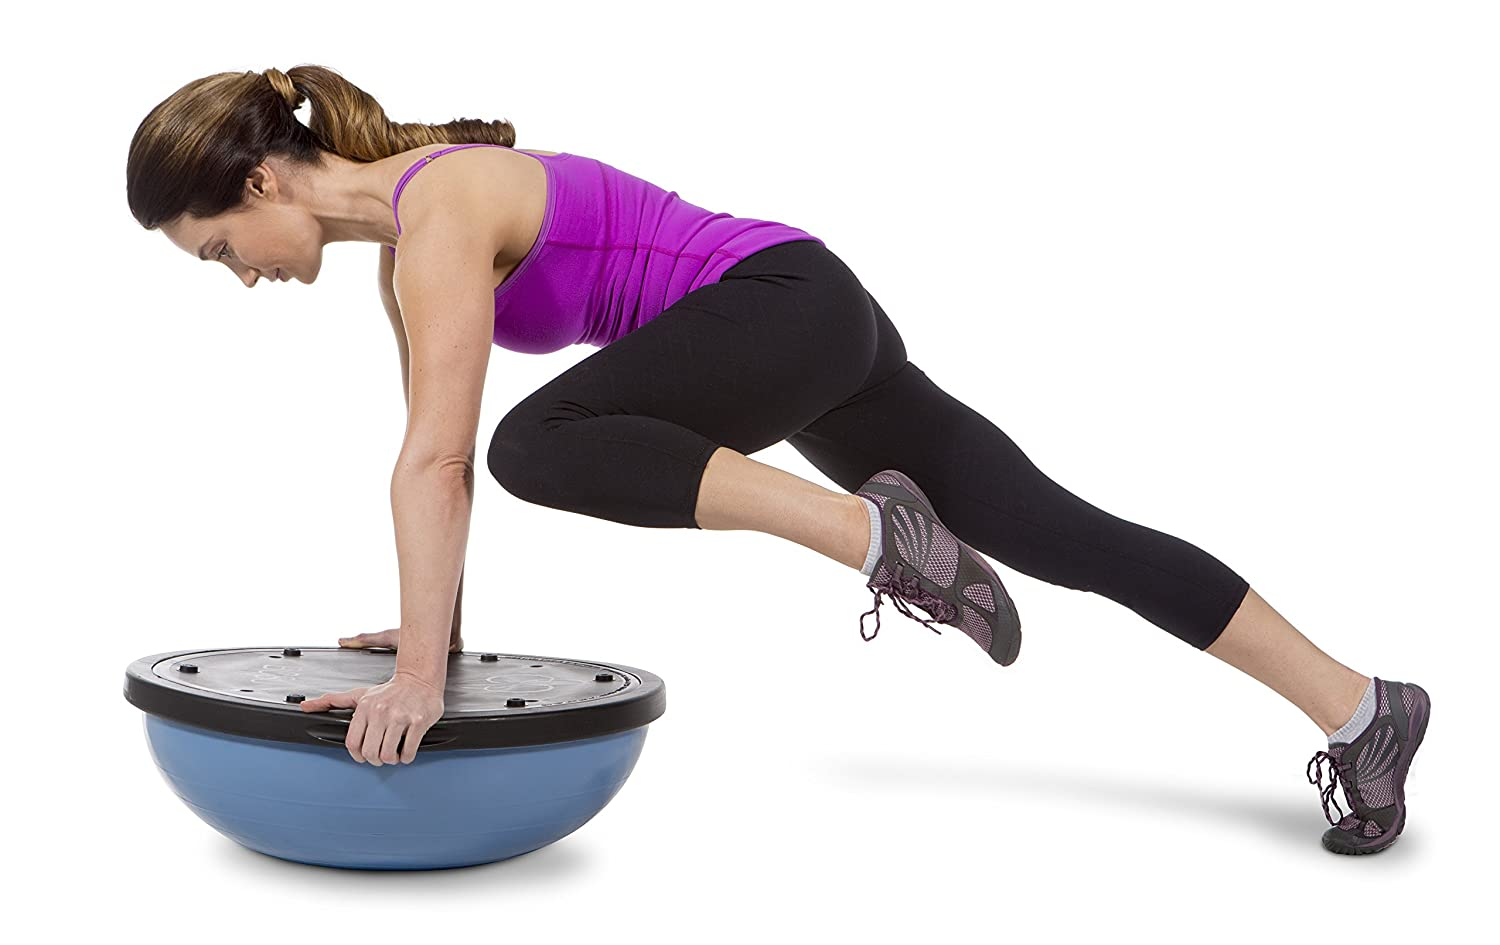 BOSU Balance Trainer Exercise Ball Commercial Professional